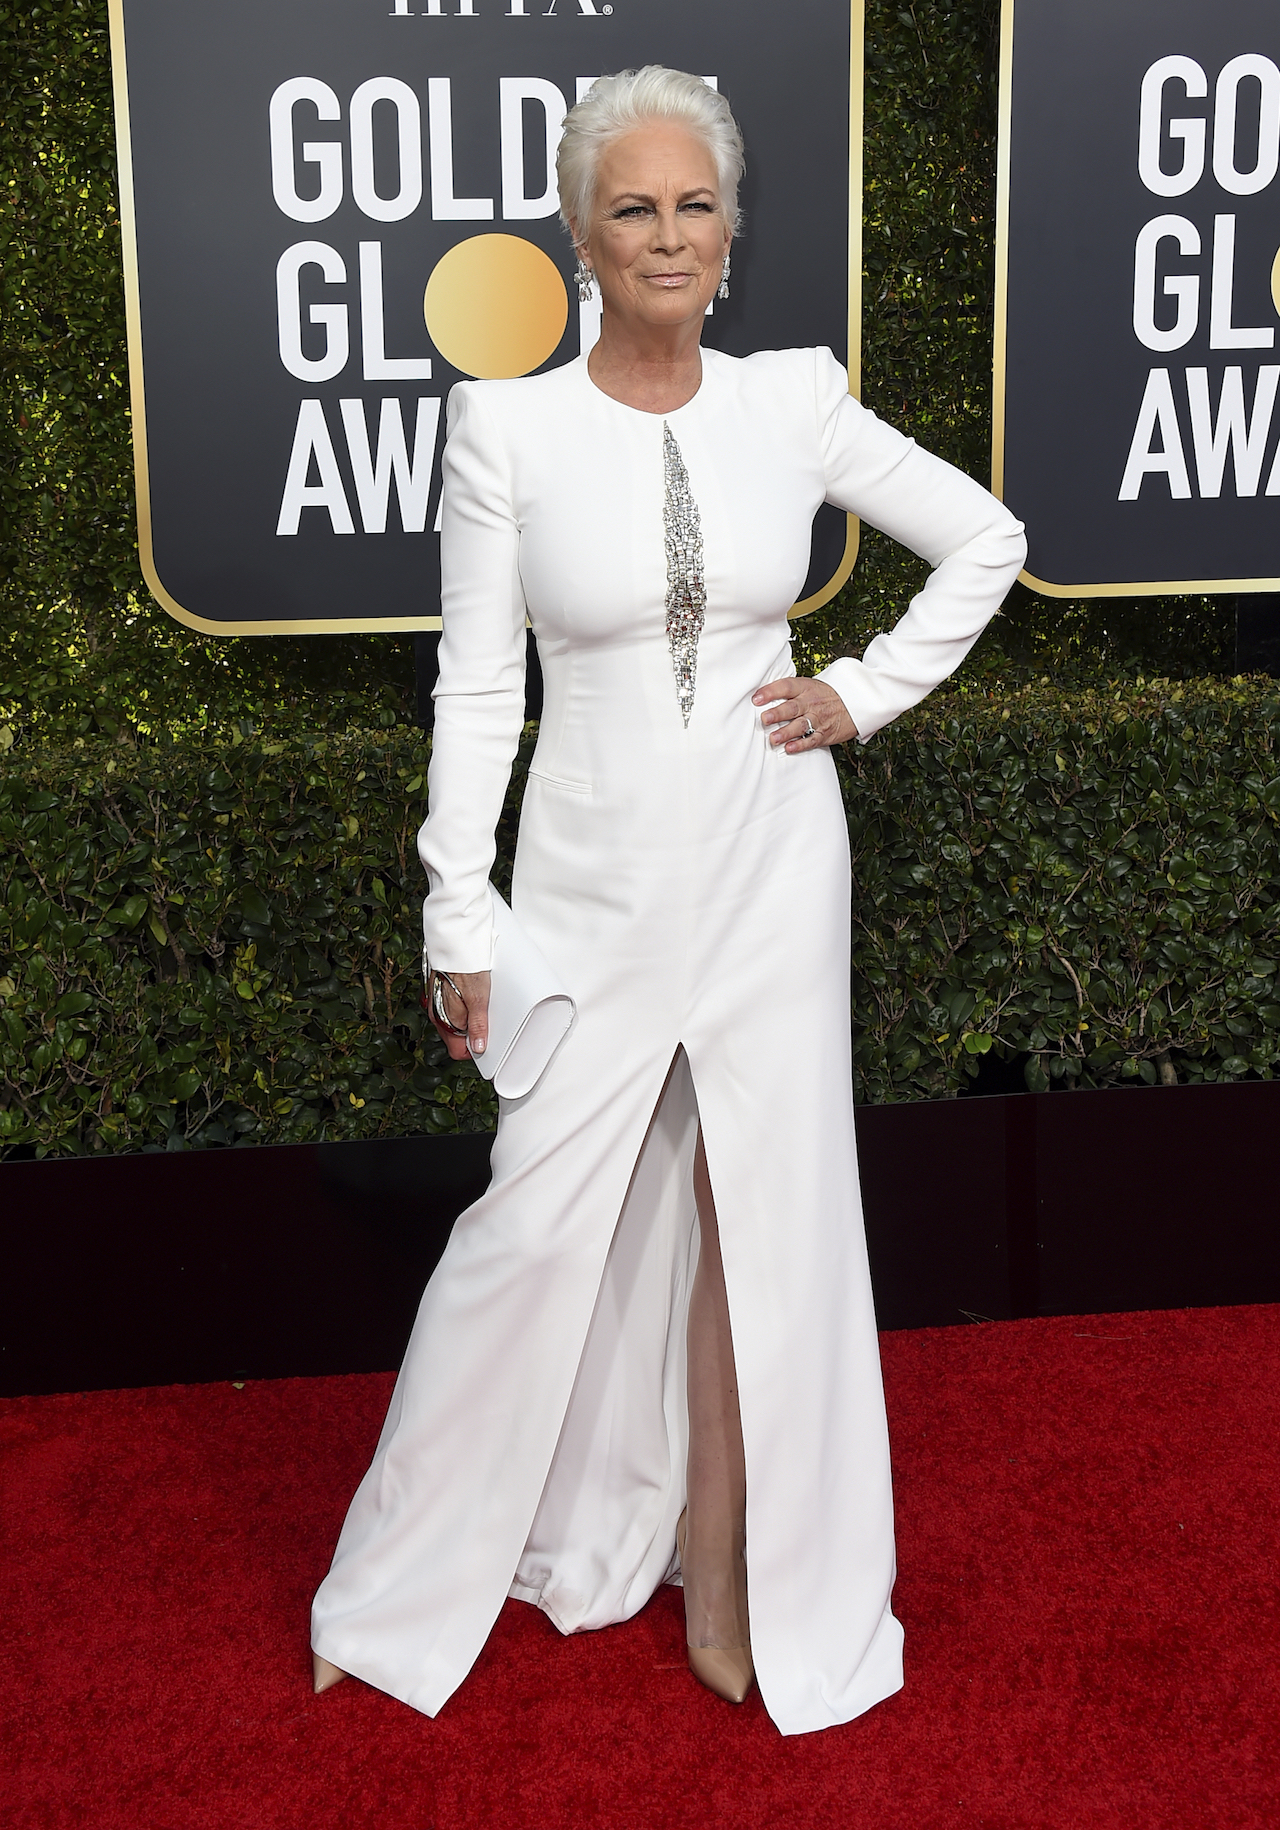 "<div class=""meta image-caption""><div class=""origin-logo origin-image ap""><span>AP</span></div><span class=""caption-text"">Jamie Lee Curtis arrives at the 76th annual Golden Globe Awards at the Beverly Hilton Hotel on Sunday, Jan. 6, 2019, in Beverly Hills, Calif. (Jordan Strauss/Invision/AP)</span></div>"